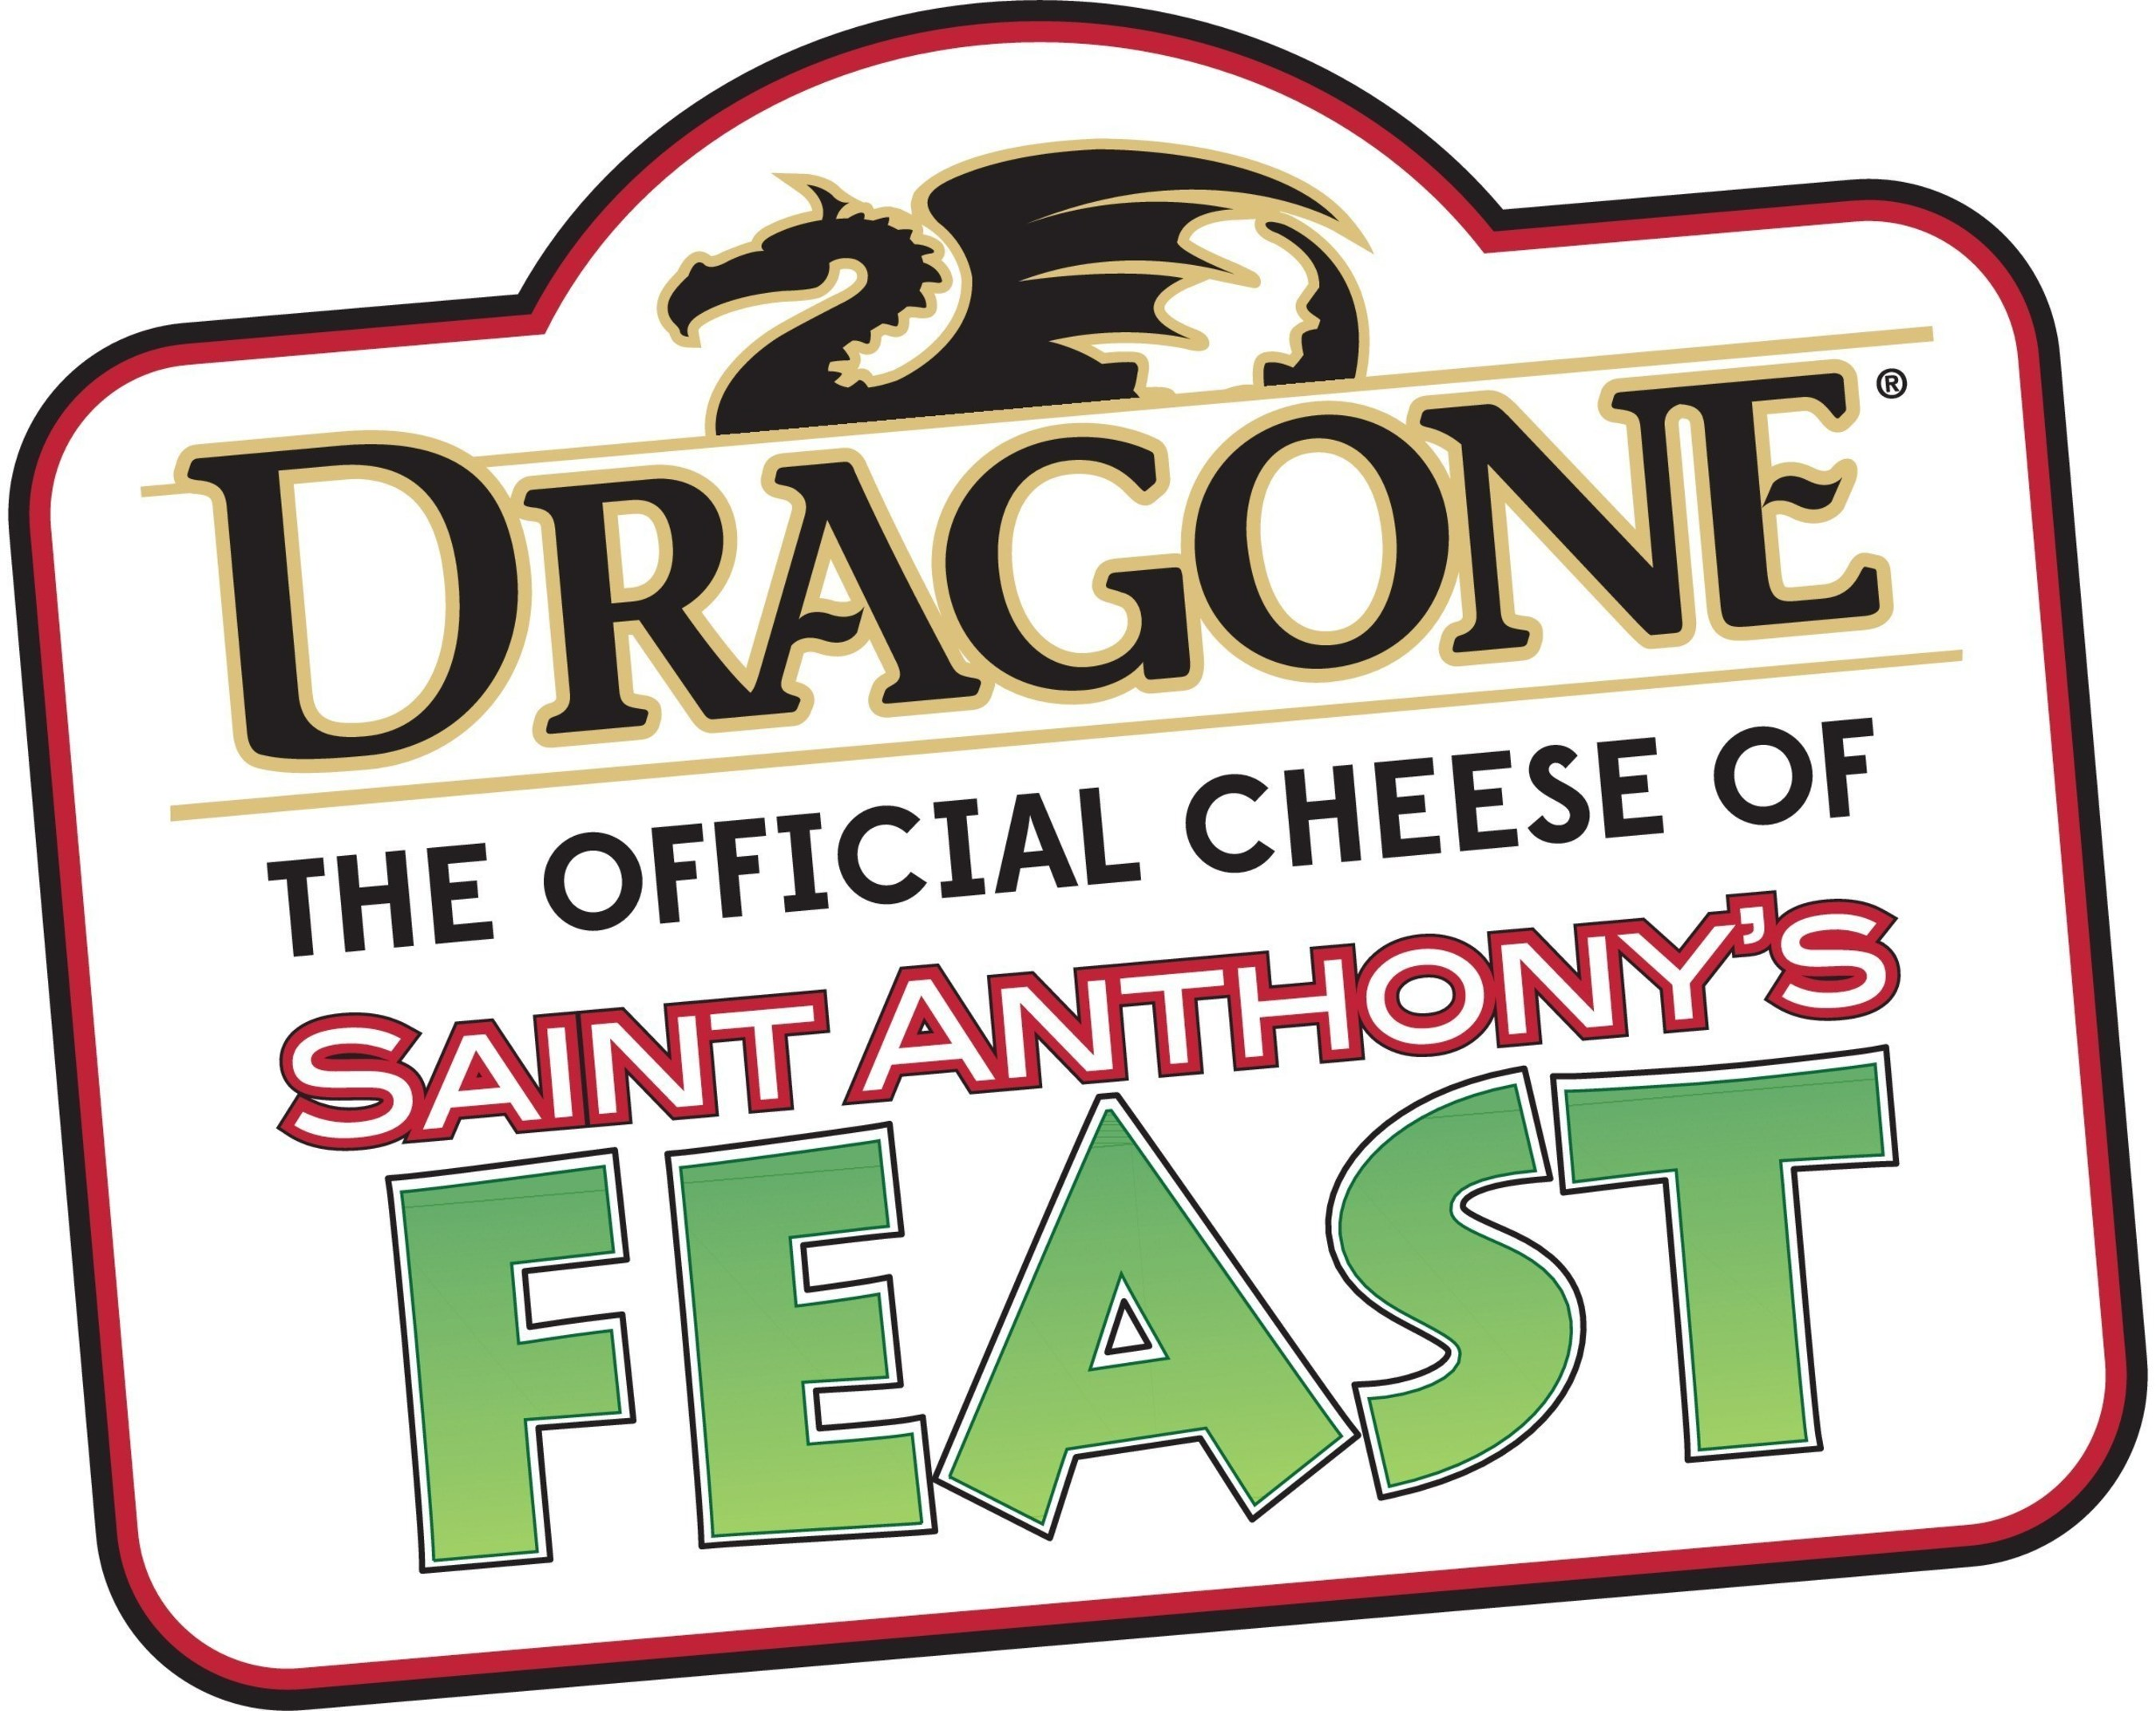 Dragone® Cheese Is Named Official Cheese Of St  Anthony's Feast